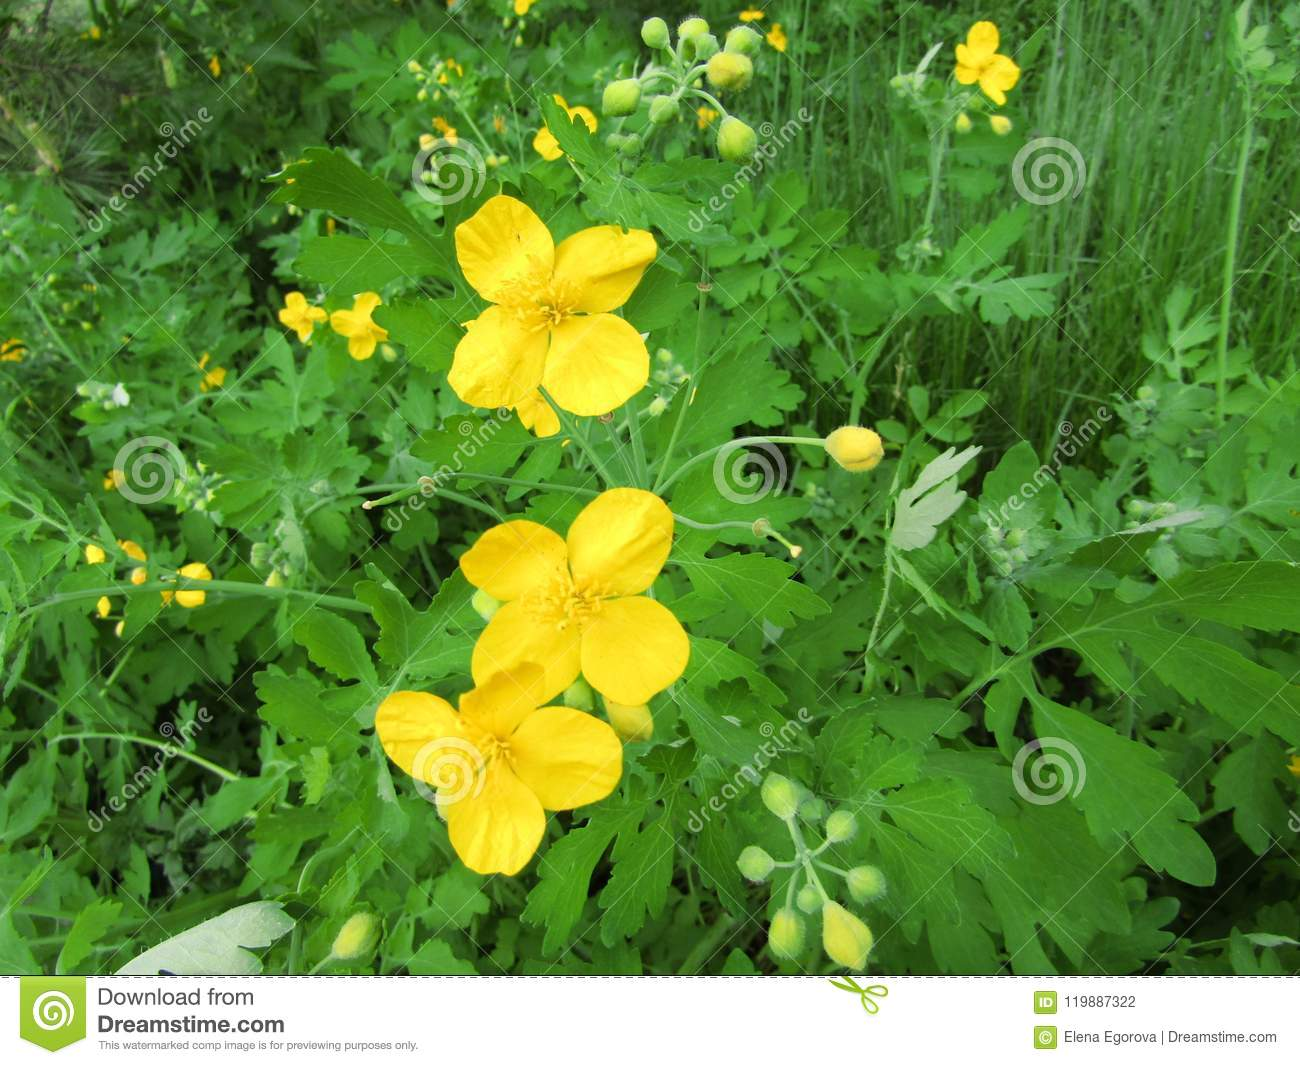 A Celandine Yellow Flower On A Grass Background Stock Photo Image